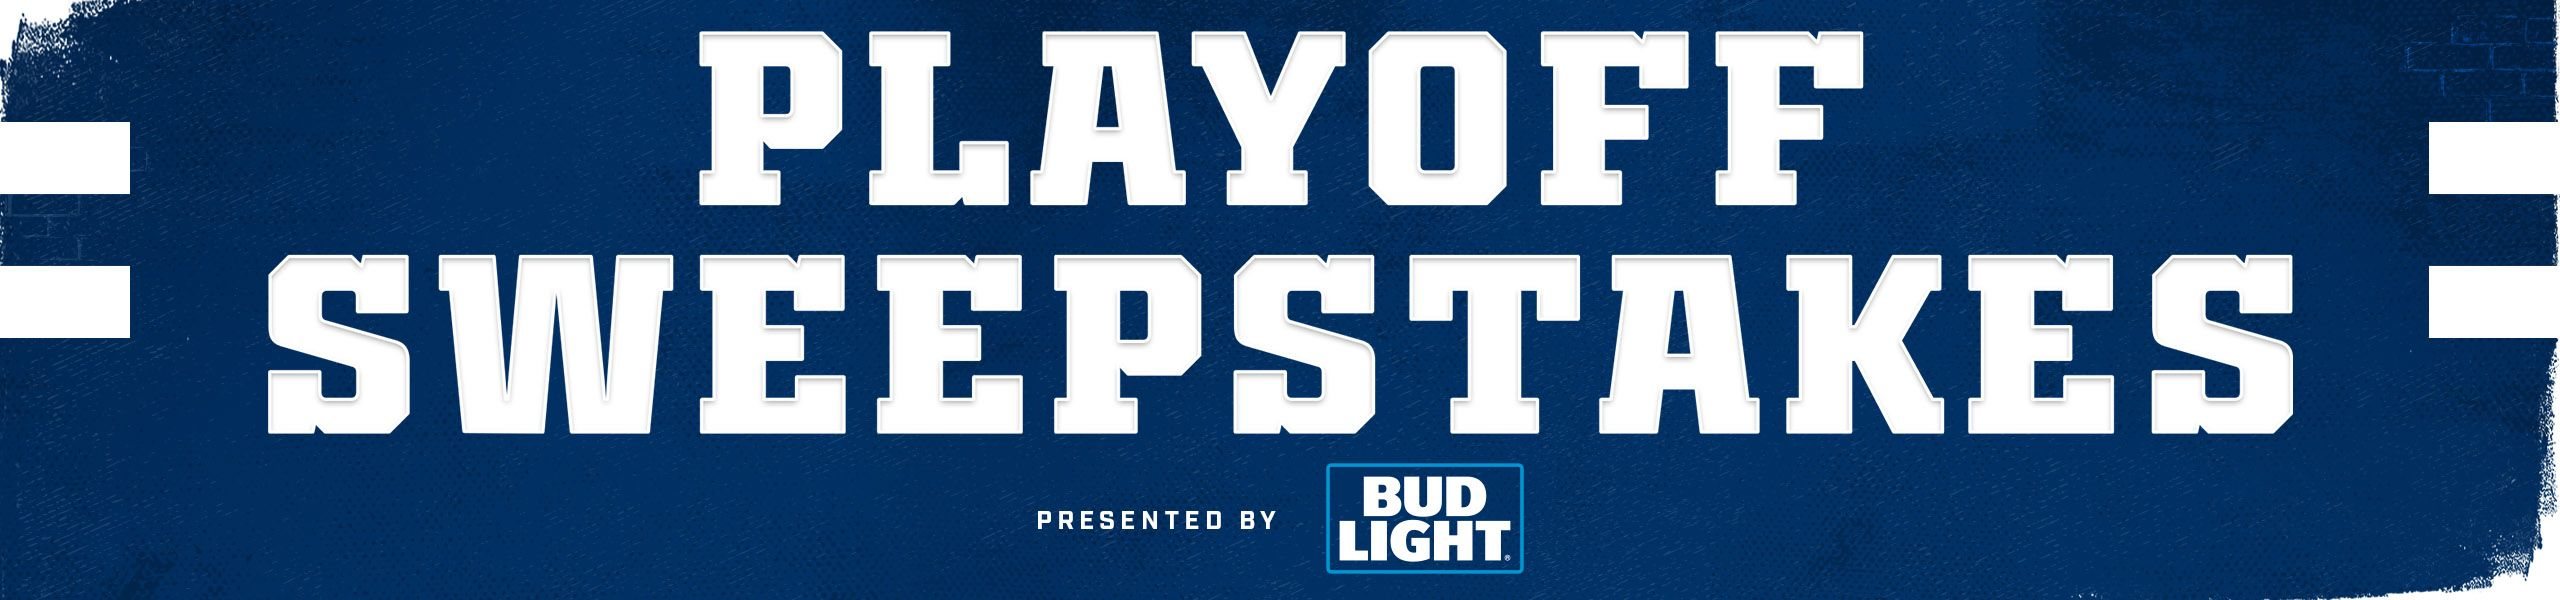 Playoff Sweepstakes_2560x600_FNL